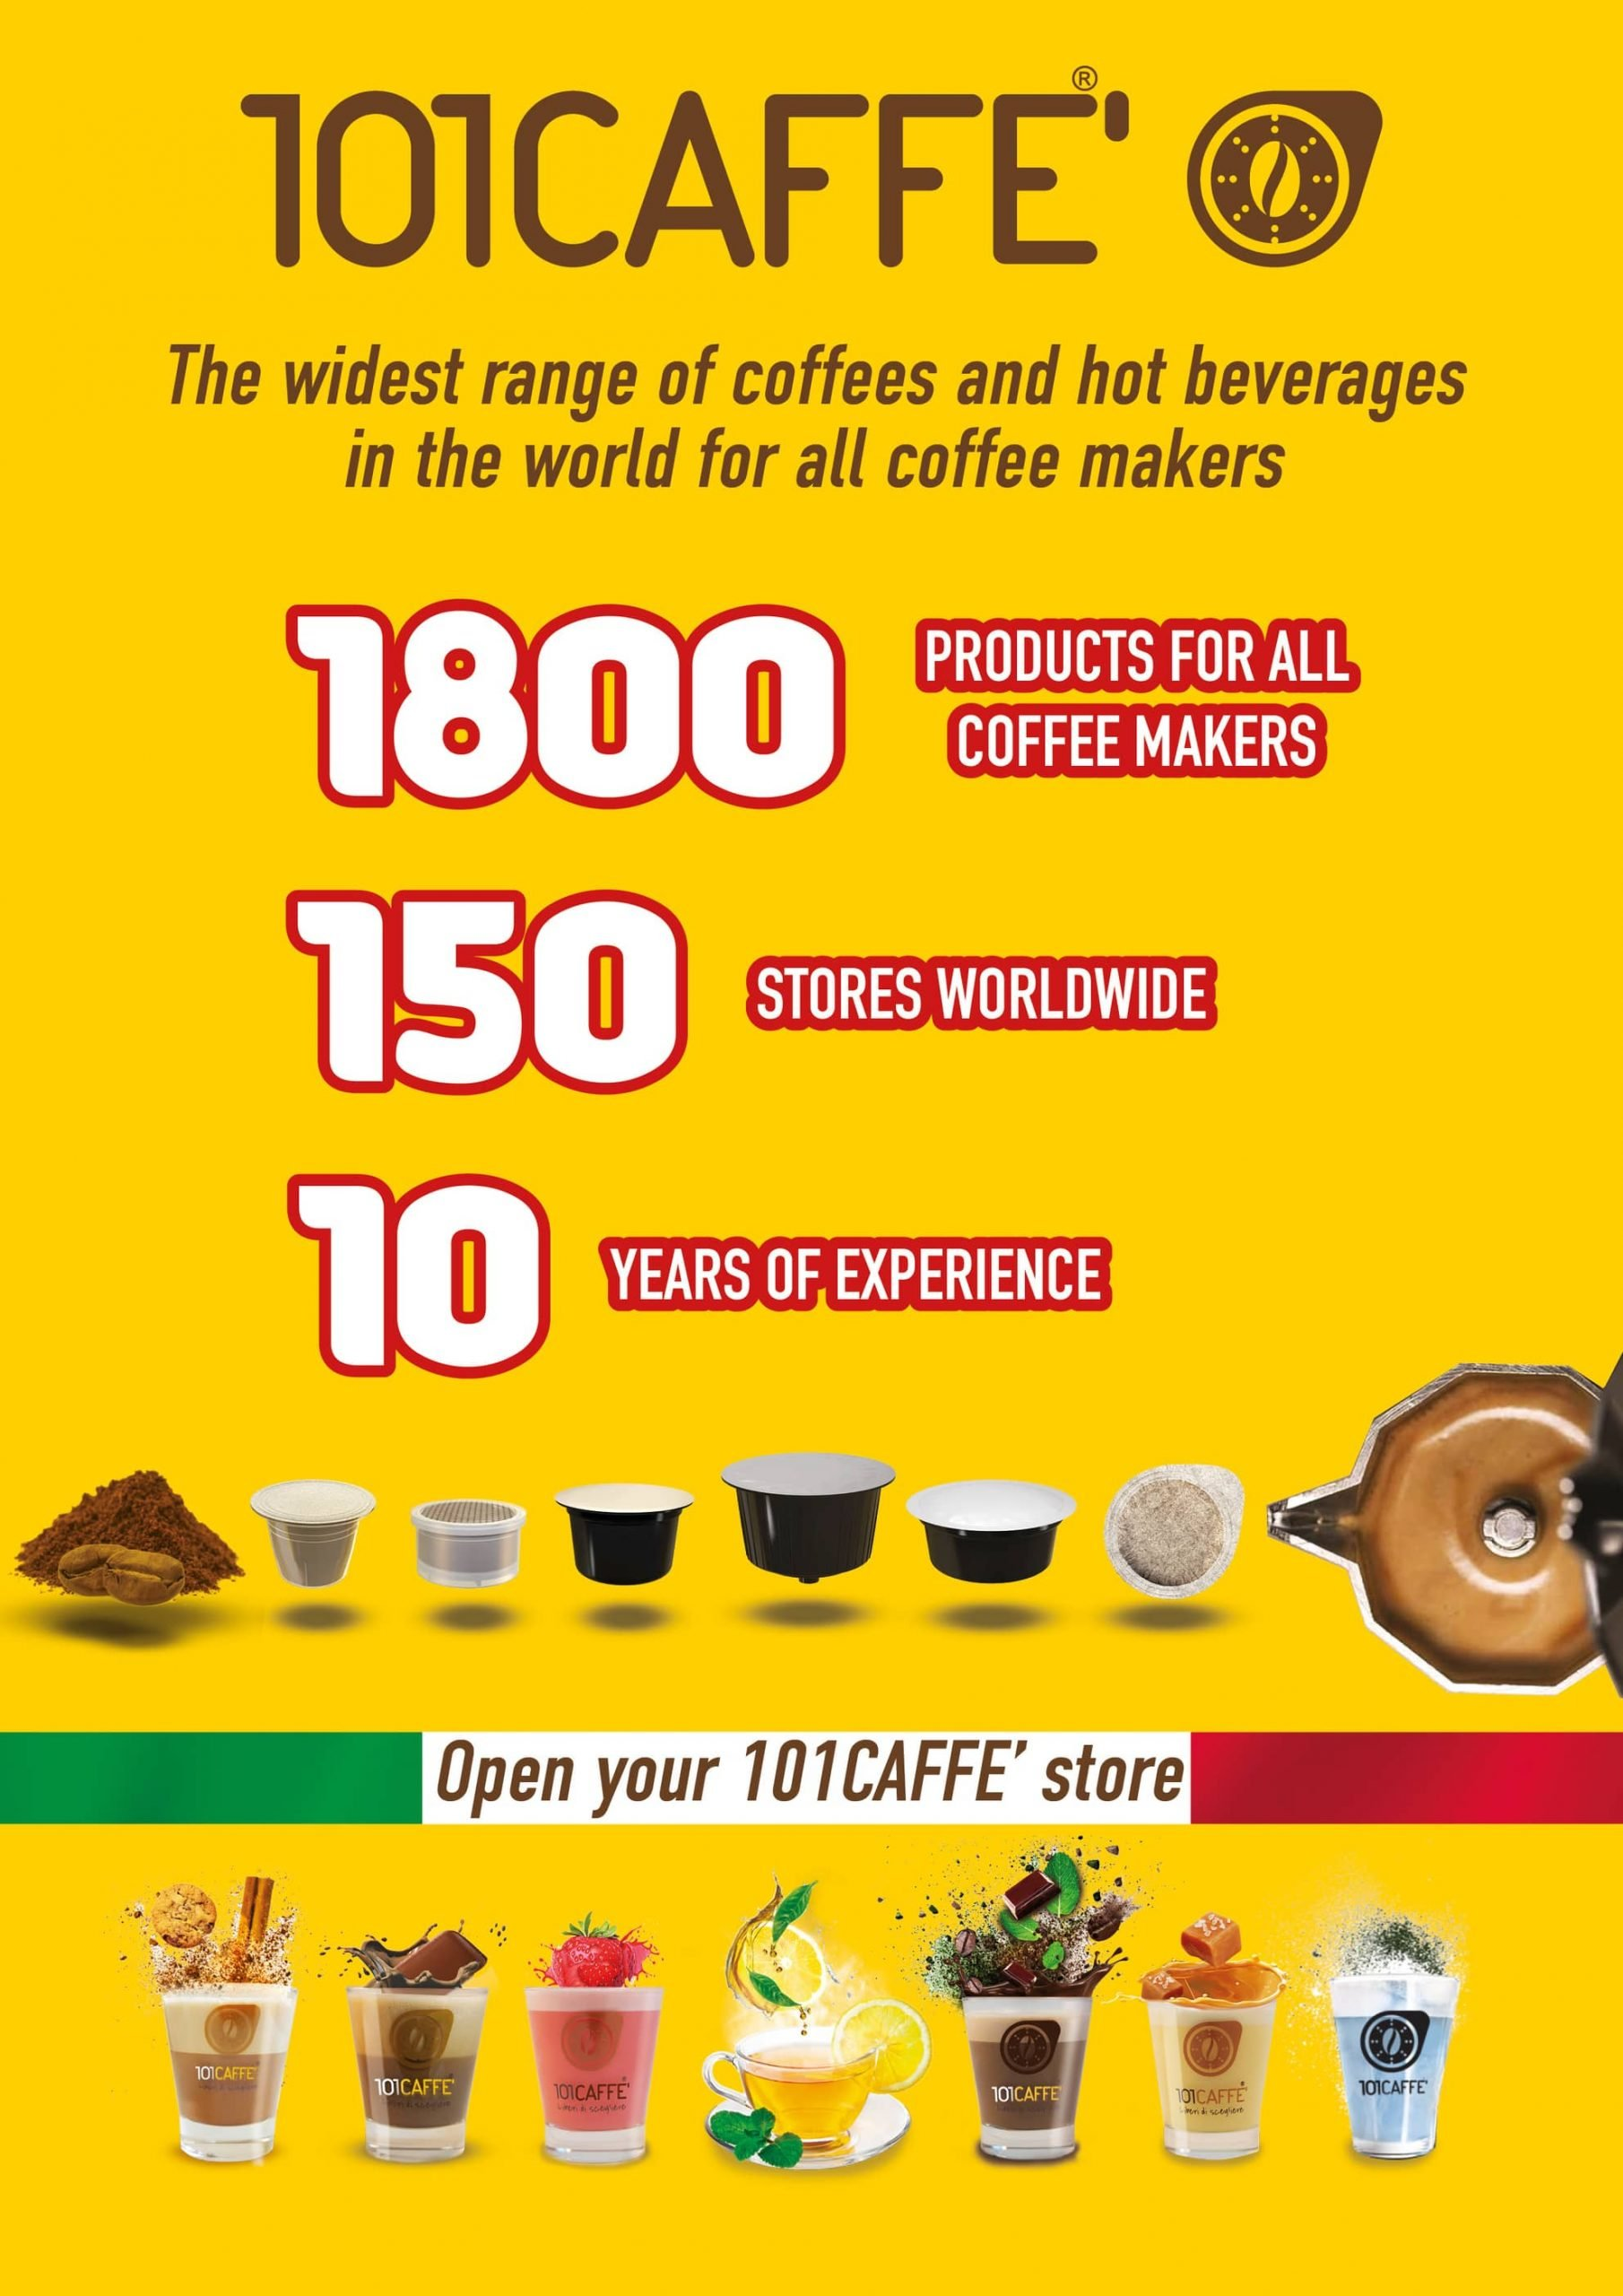 The widest range of coffee and beverages in the world for all coffee makers